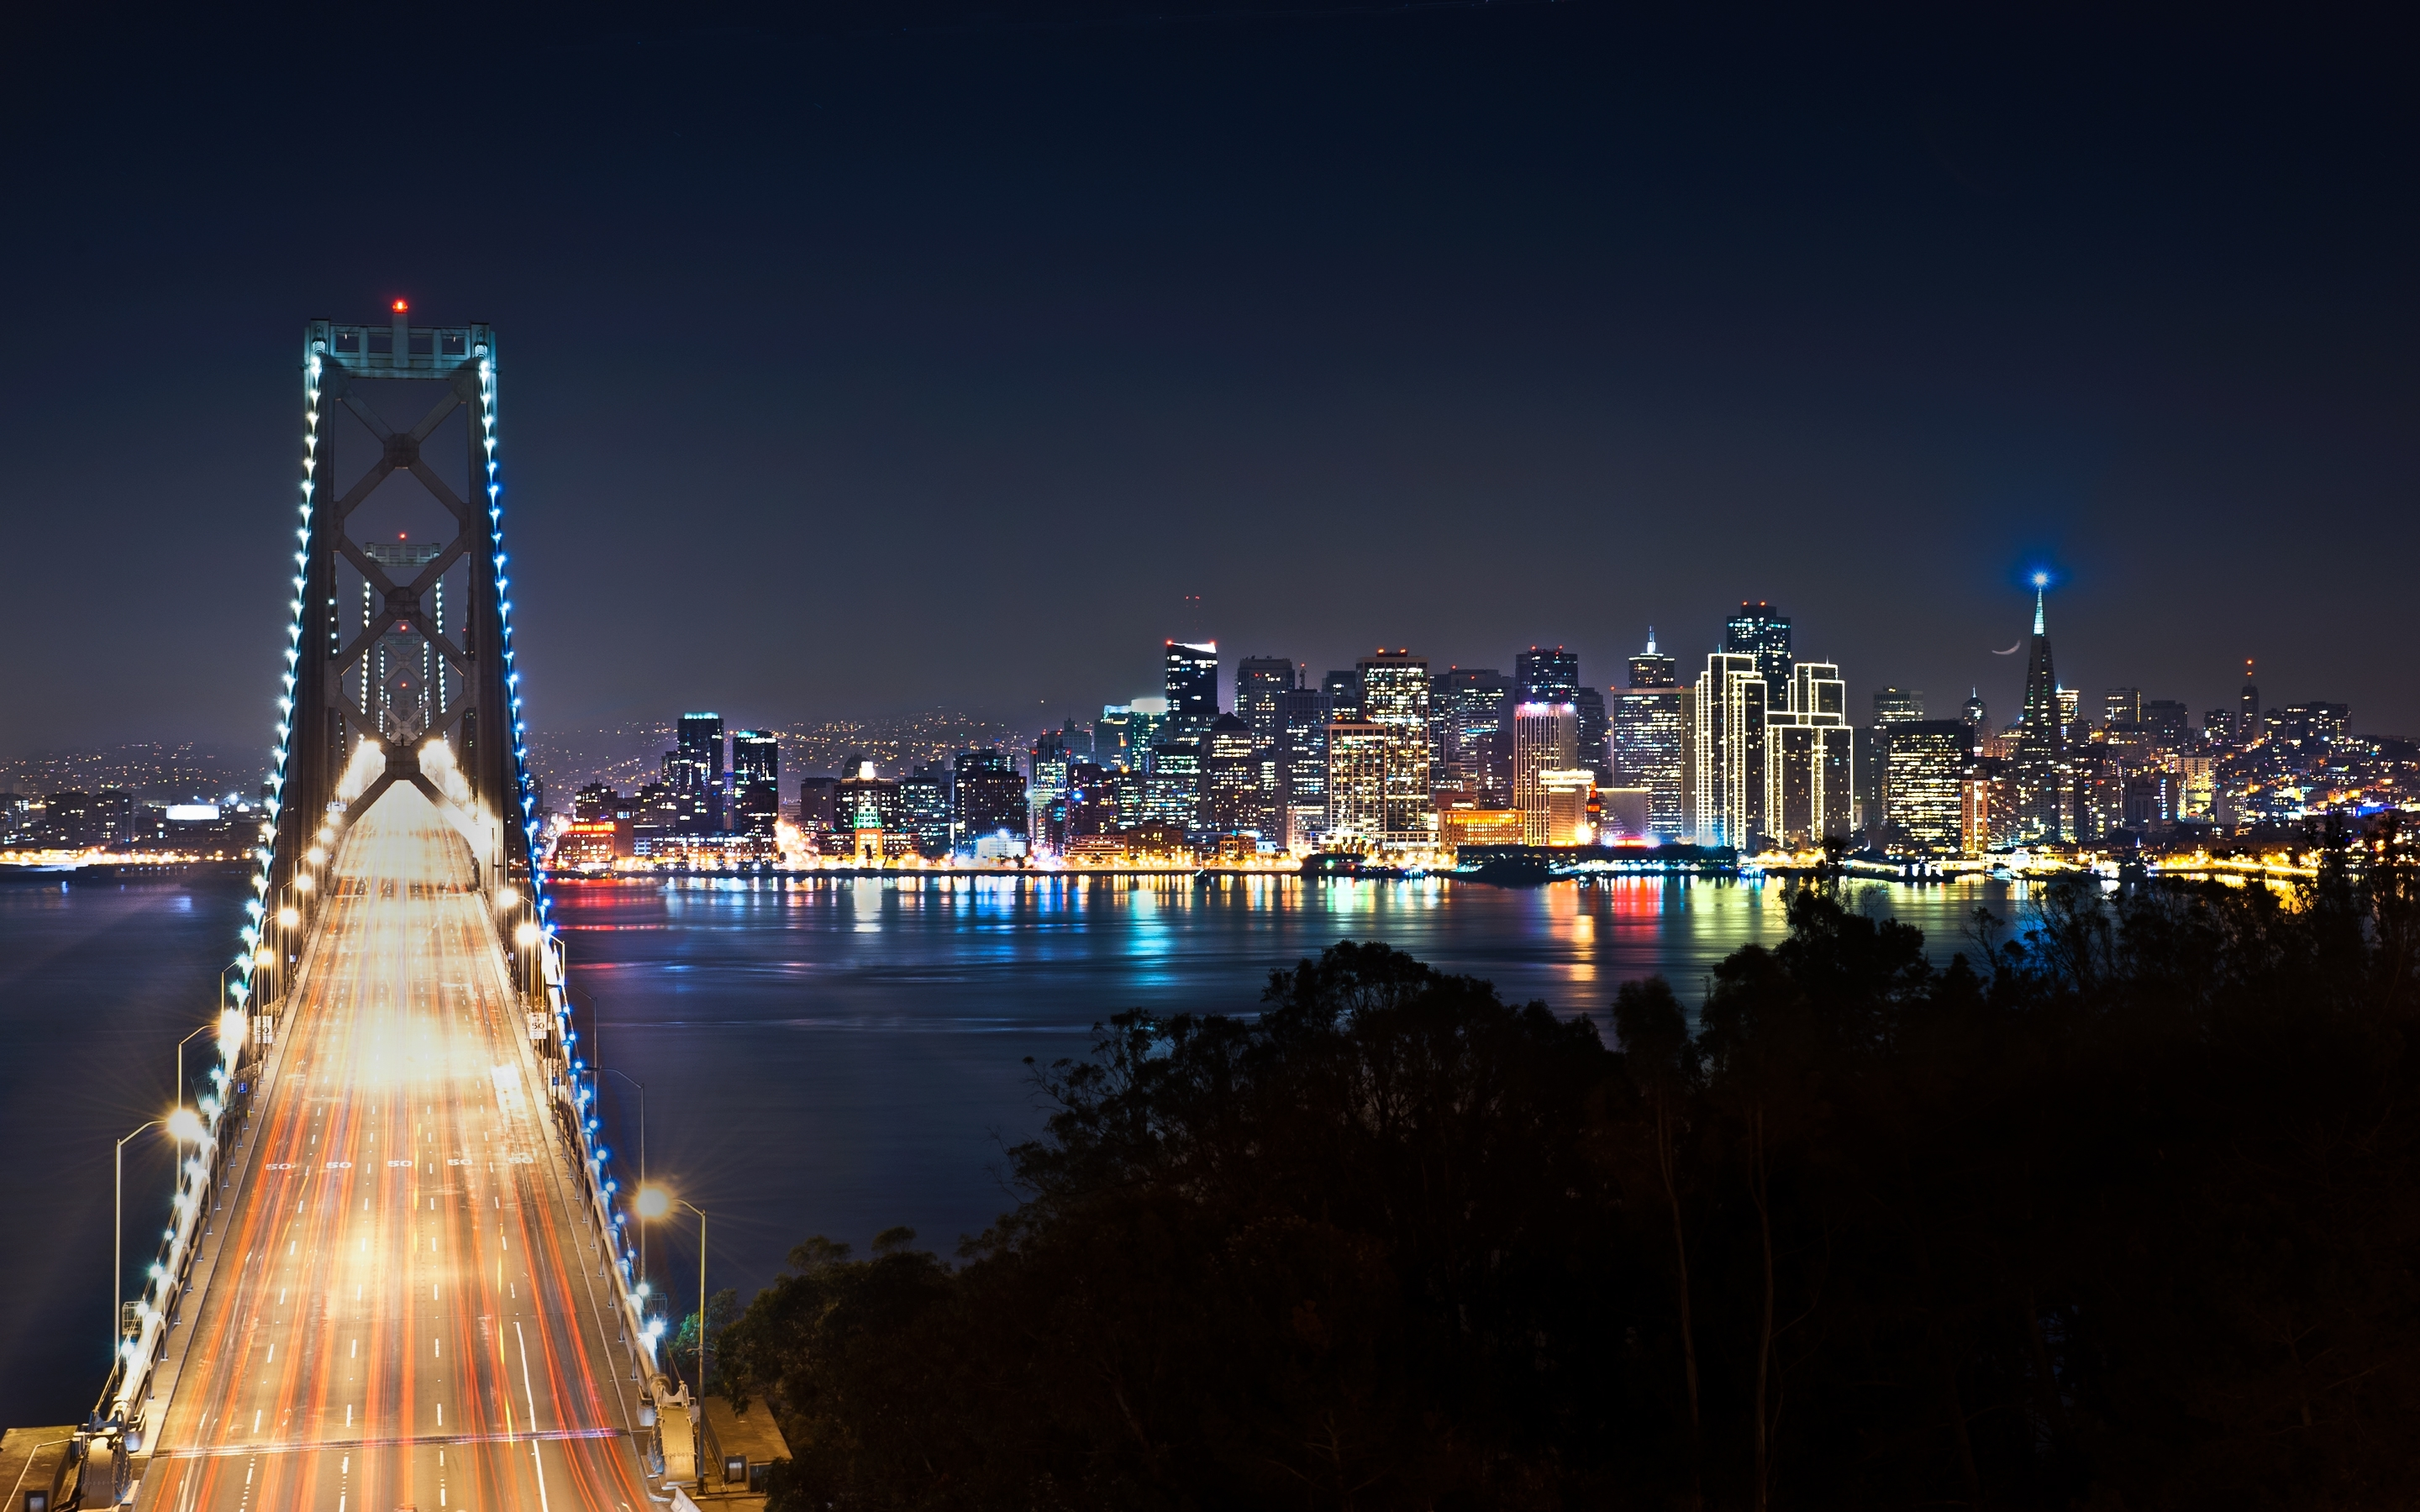 san francisco at night wallpapers | hd wallpapers | id #12240